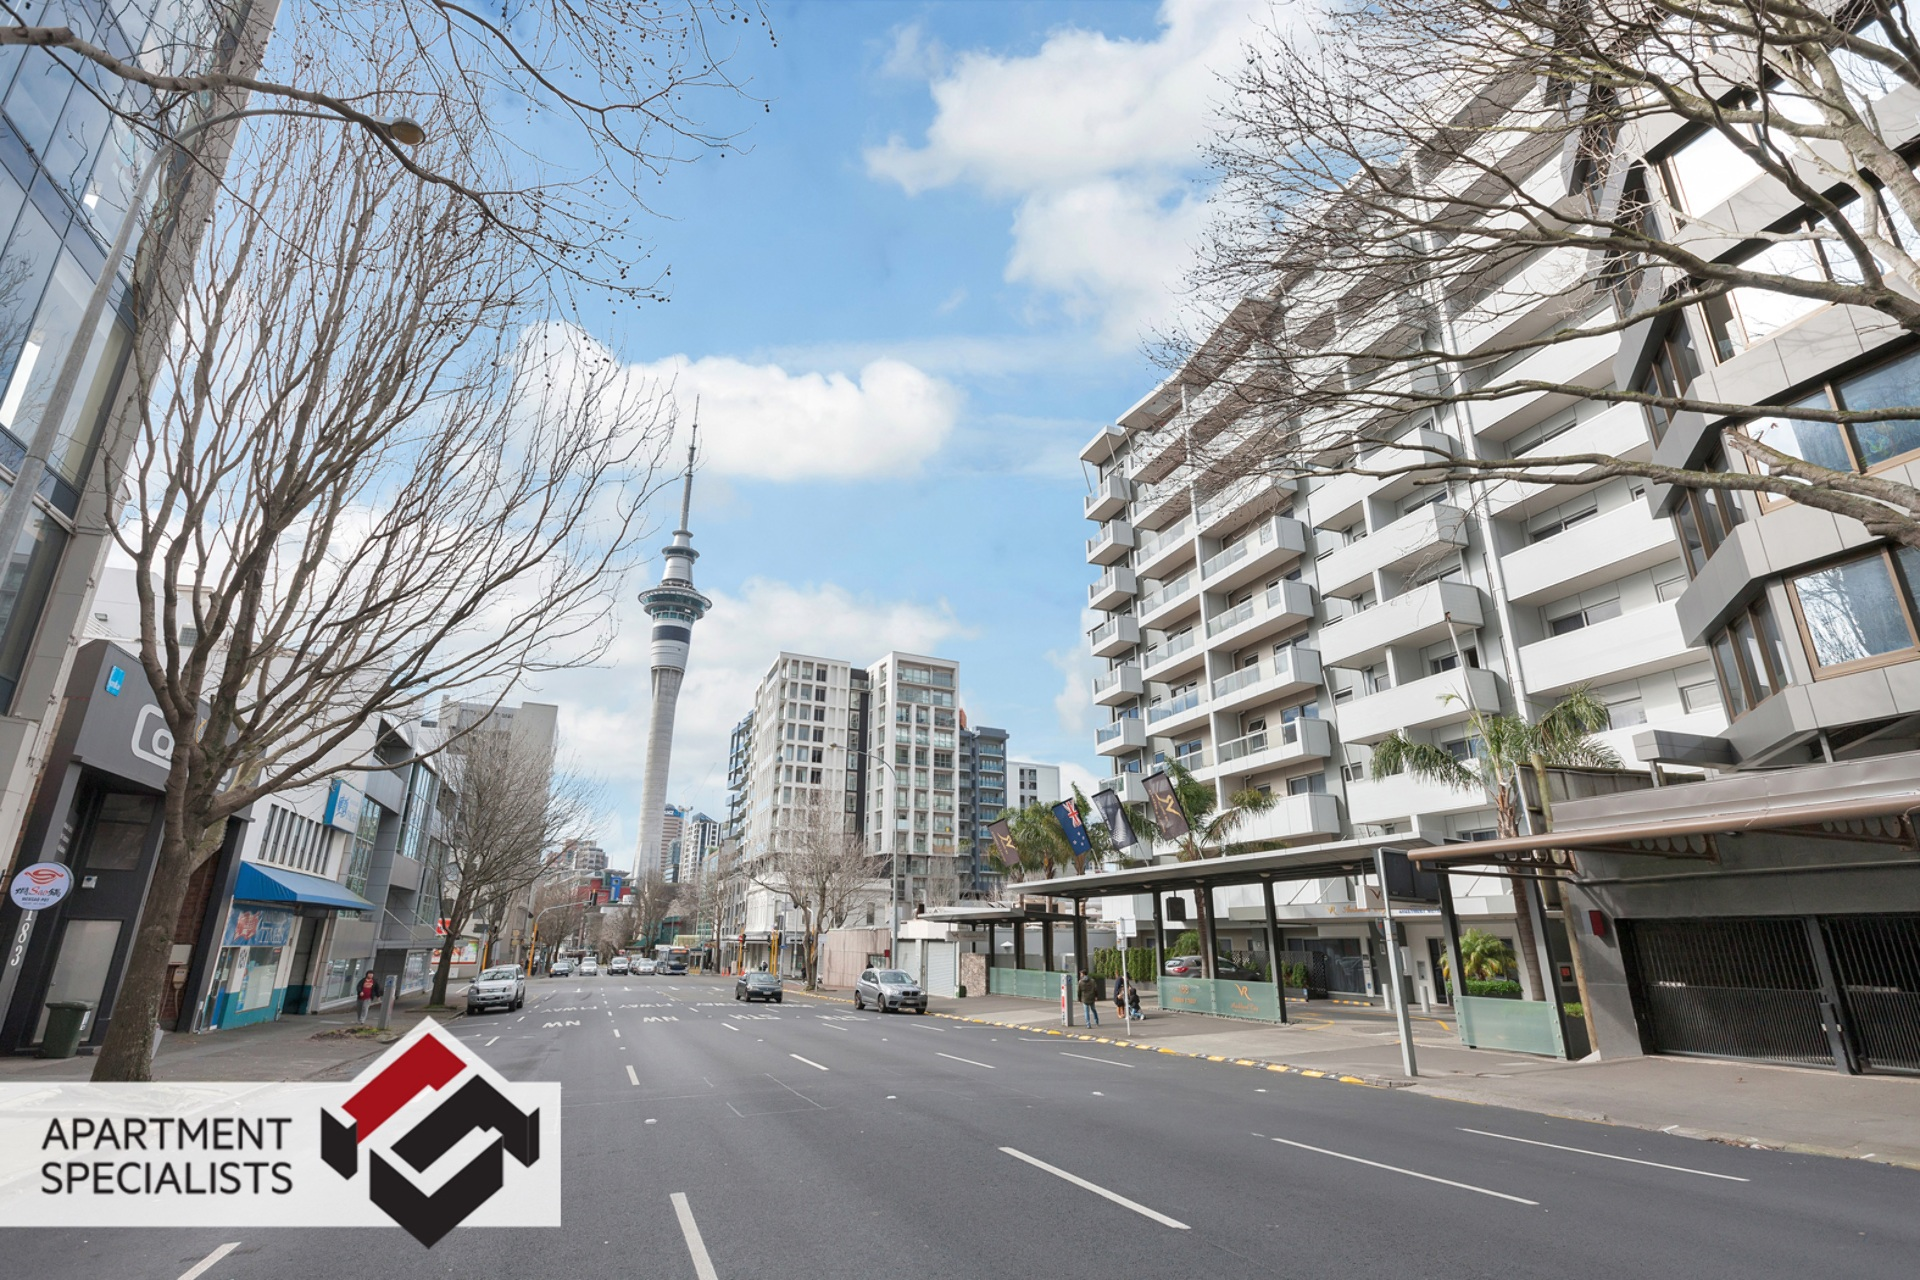 1 | 188 Hobson Street, City Centre | Apartment Specialists